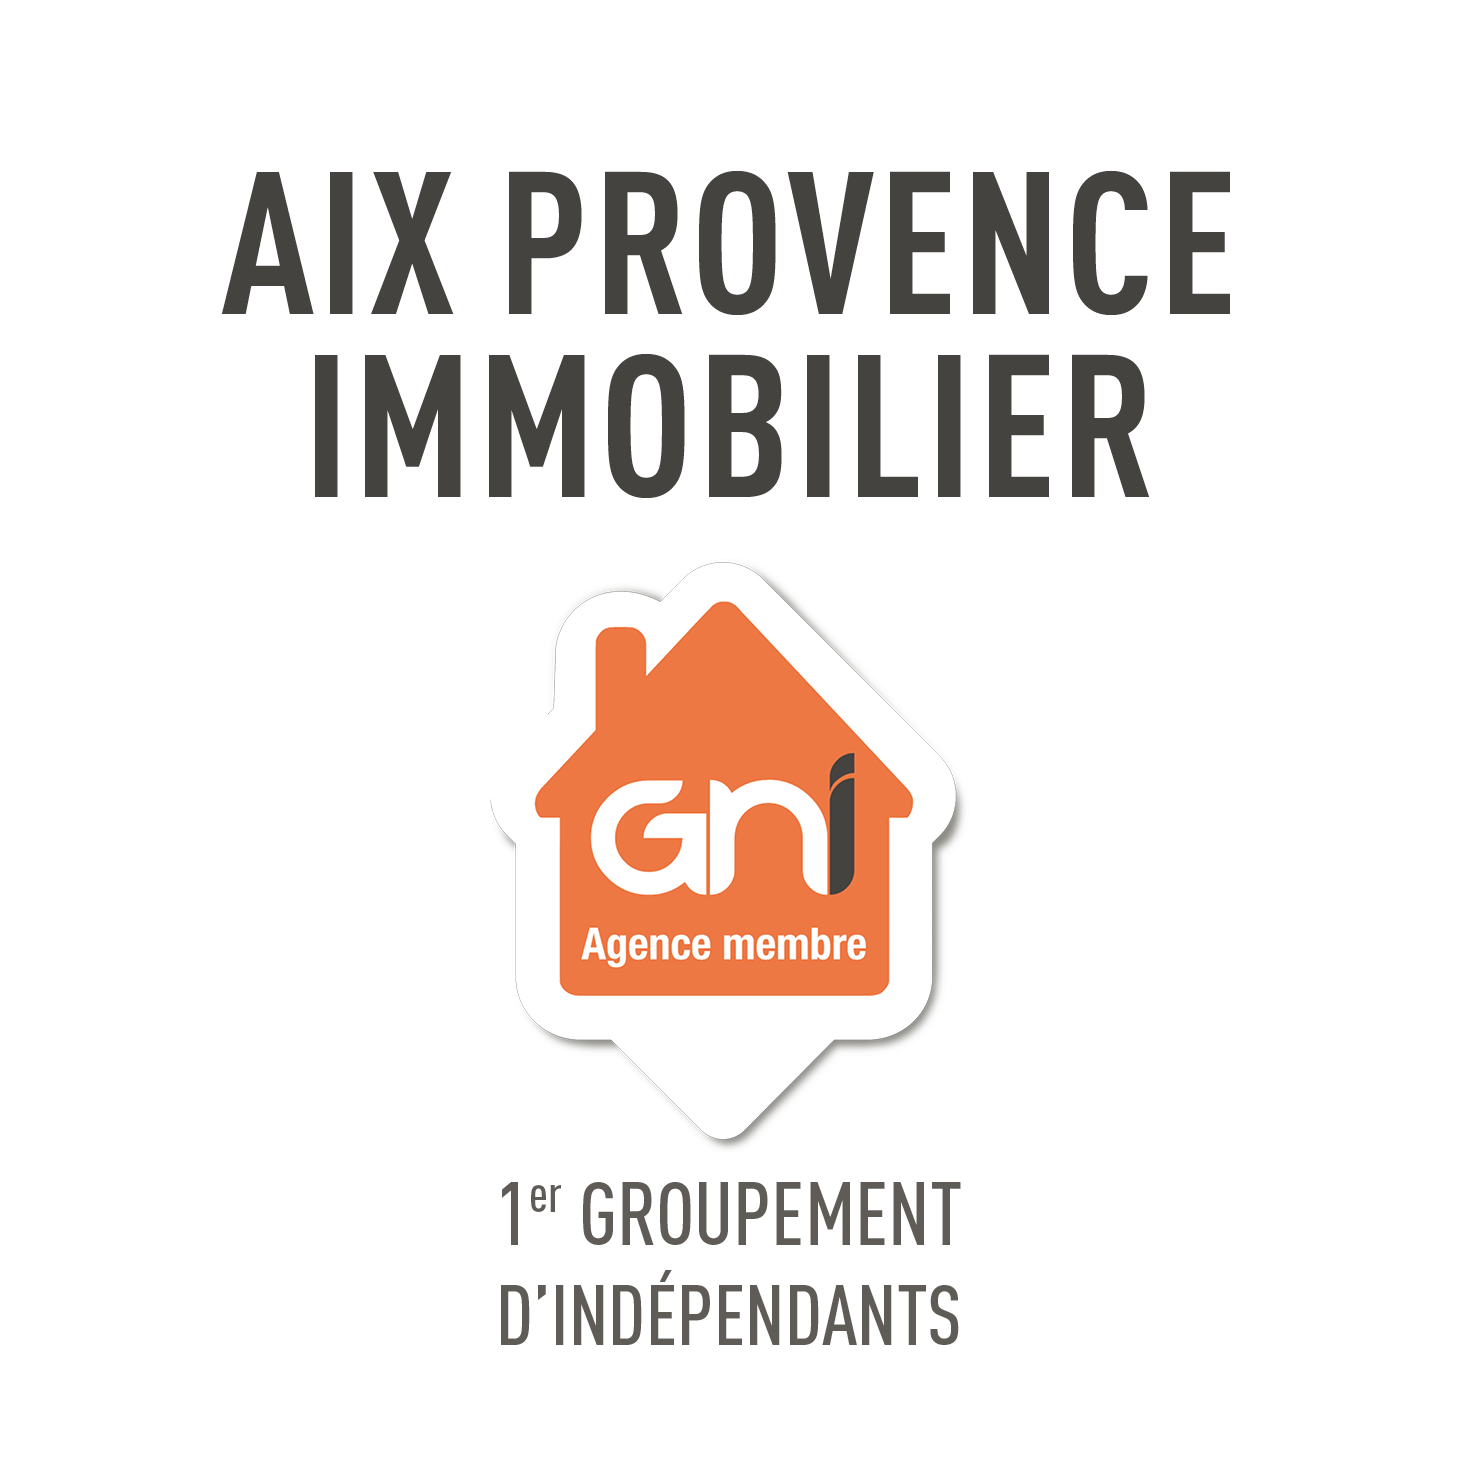 GNIMMO - AIX PROVENCE IMMOBILIER